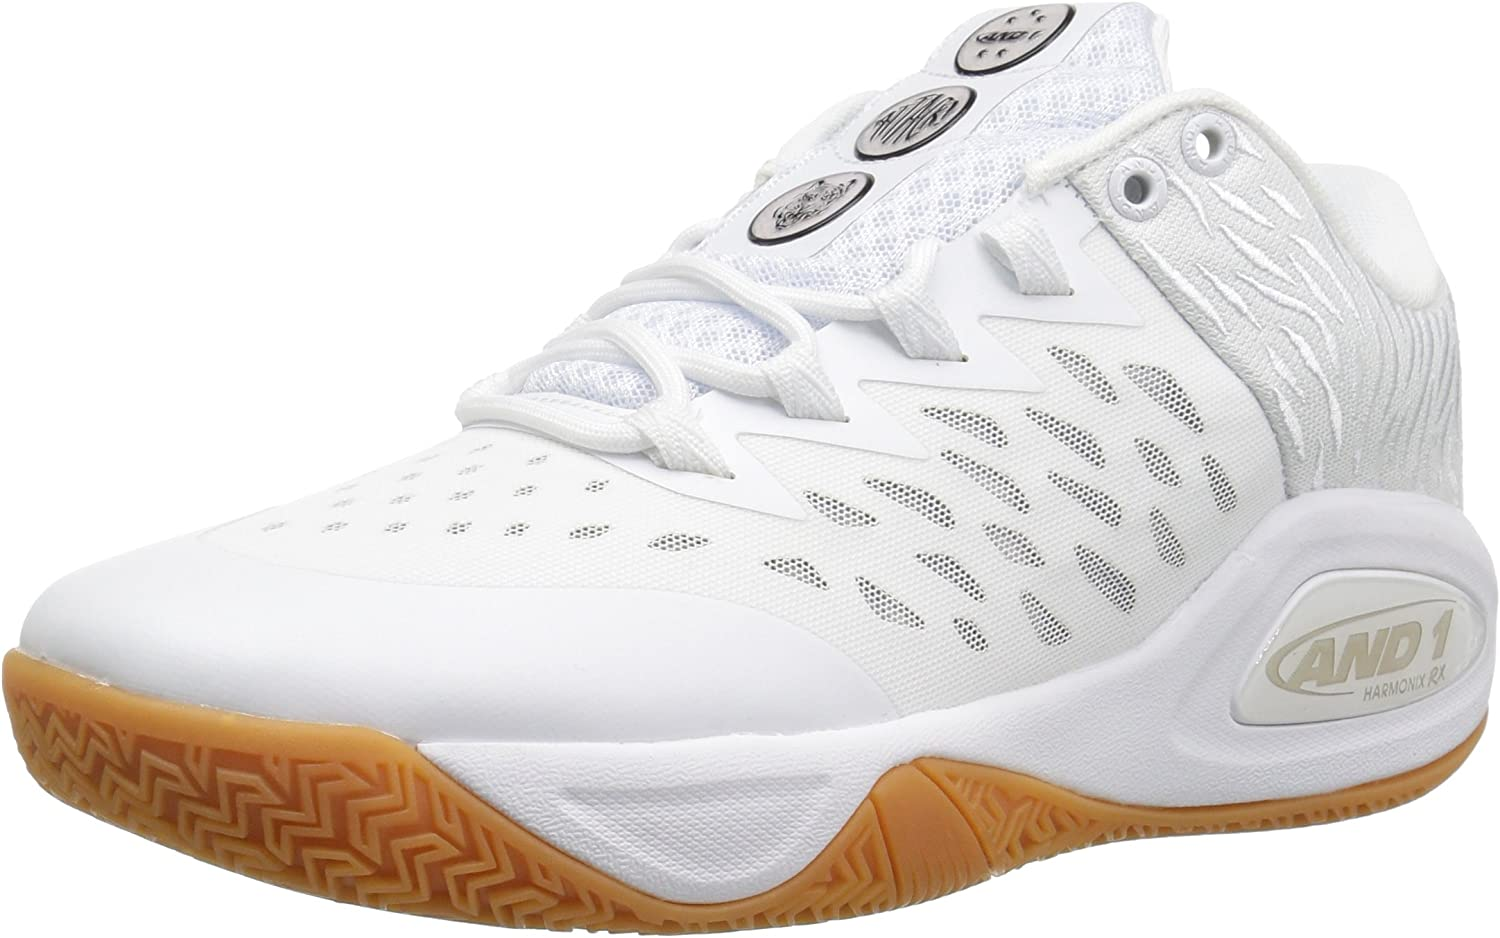 AND1 Men's Attack Low Basketball shoes, White Super Foil Gum, 7.5 UK